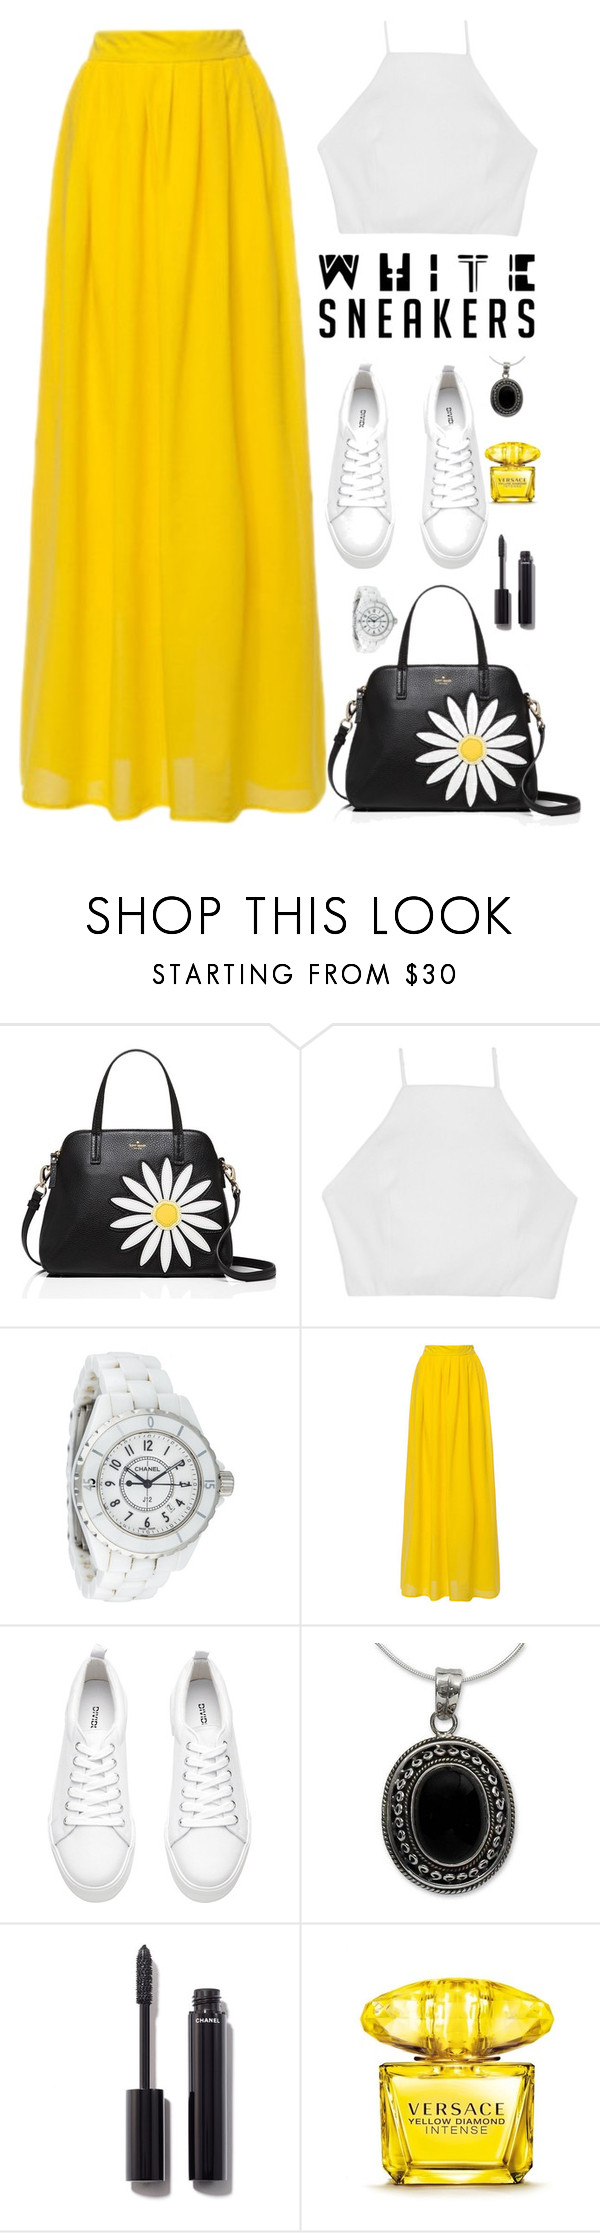 """White  Sneakers "" by samah ❤ liked on Polyvore featuring Kate Spade, rag & bone, Chanel, NOVICA and Versace"